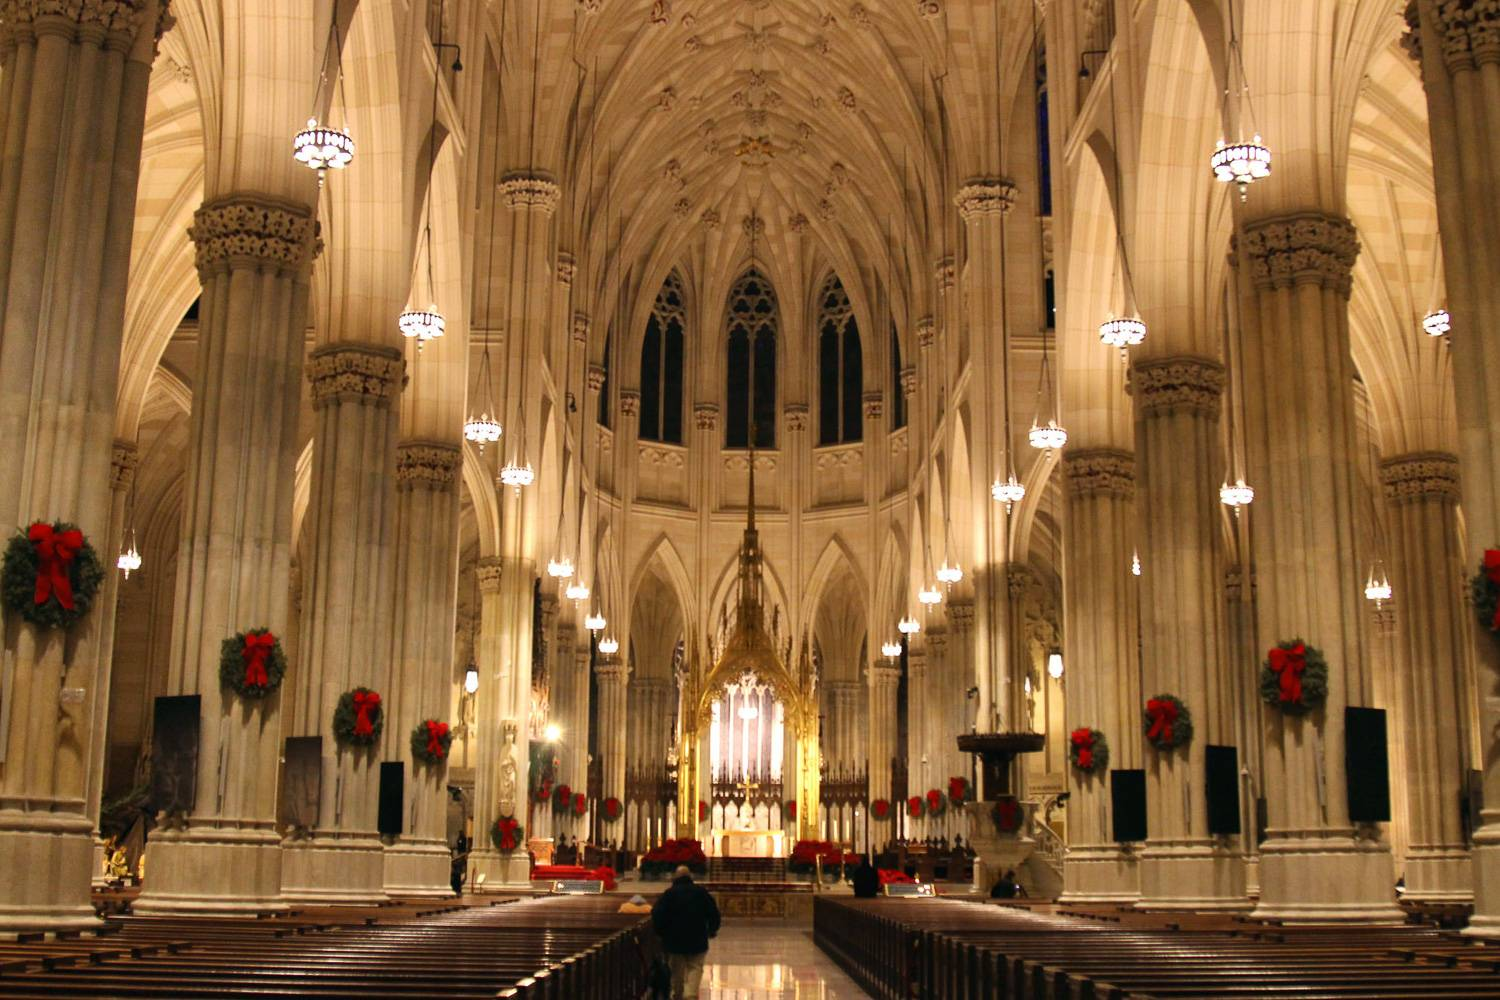 Image of St. Patrick's Cathedral in New York City, decorated with wreathes for Christmas.